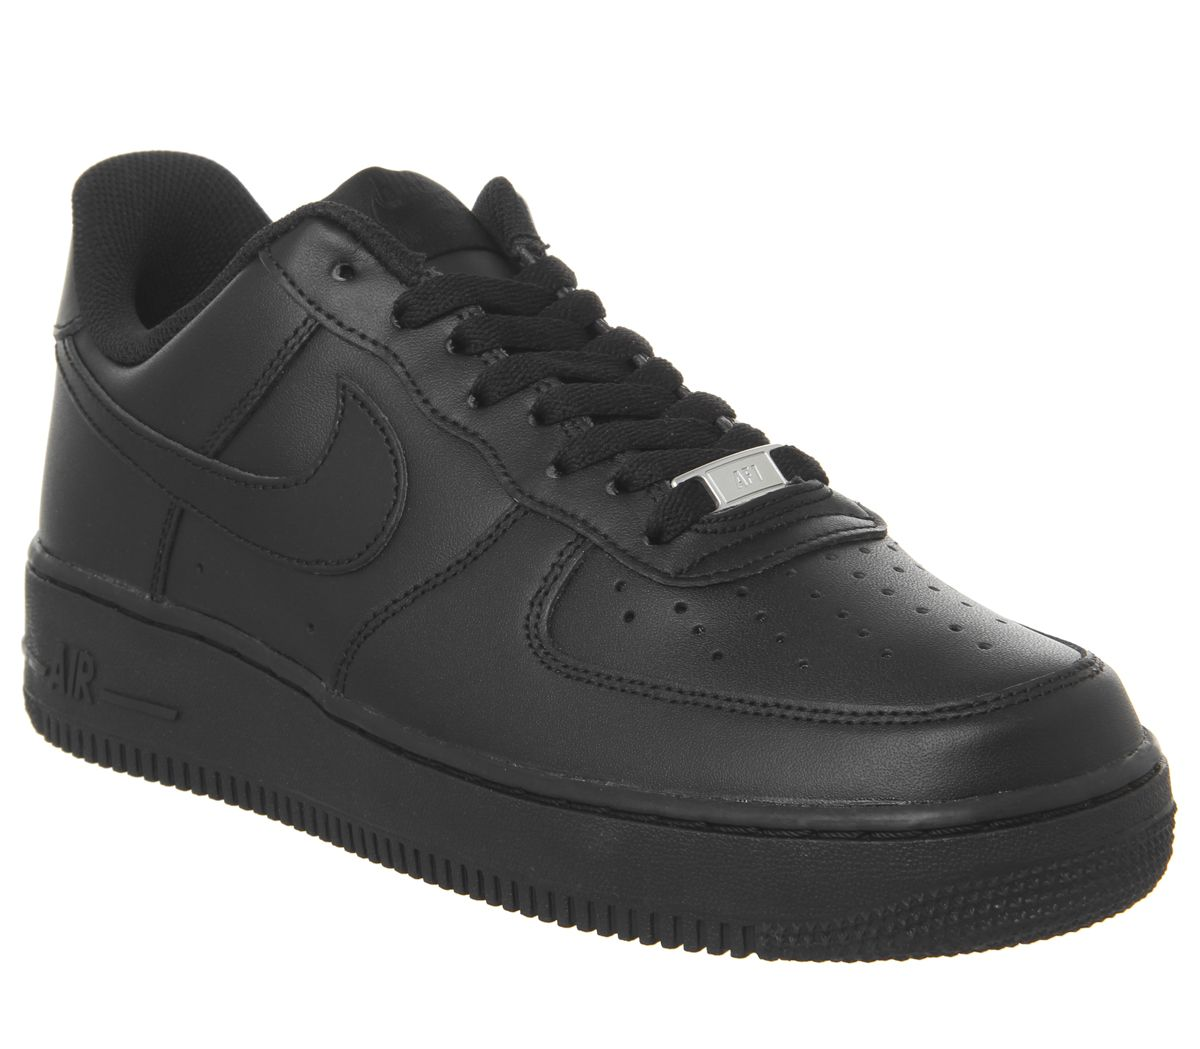 e89caea18f26a Nike Air Force 1 Trainers Black - His trainers